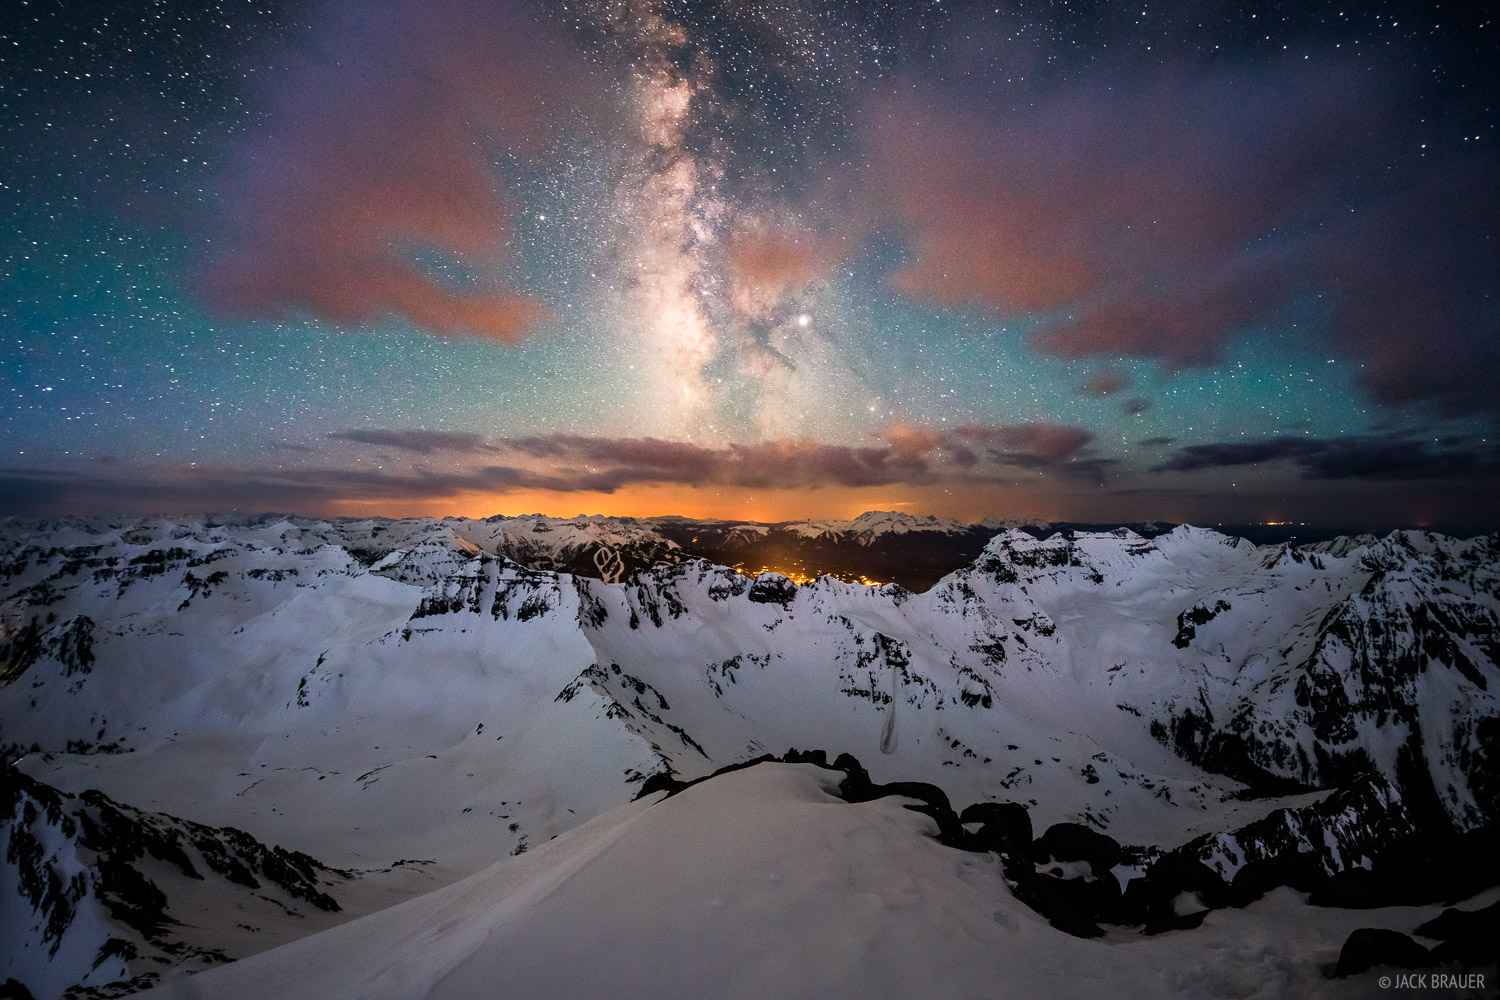 Colorado, Mt. Sneffels, San Juan Mountains, Sneffels Range, summit, Milky Way, Telluride